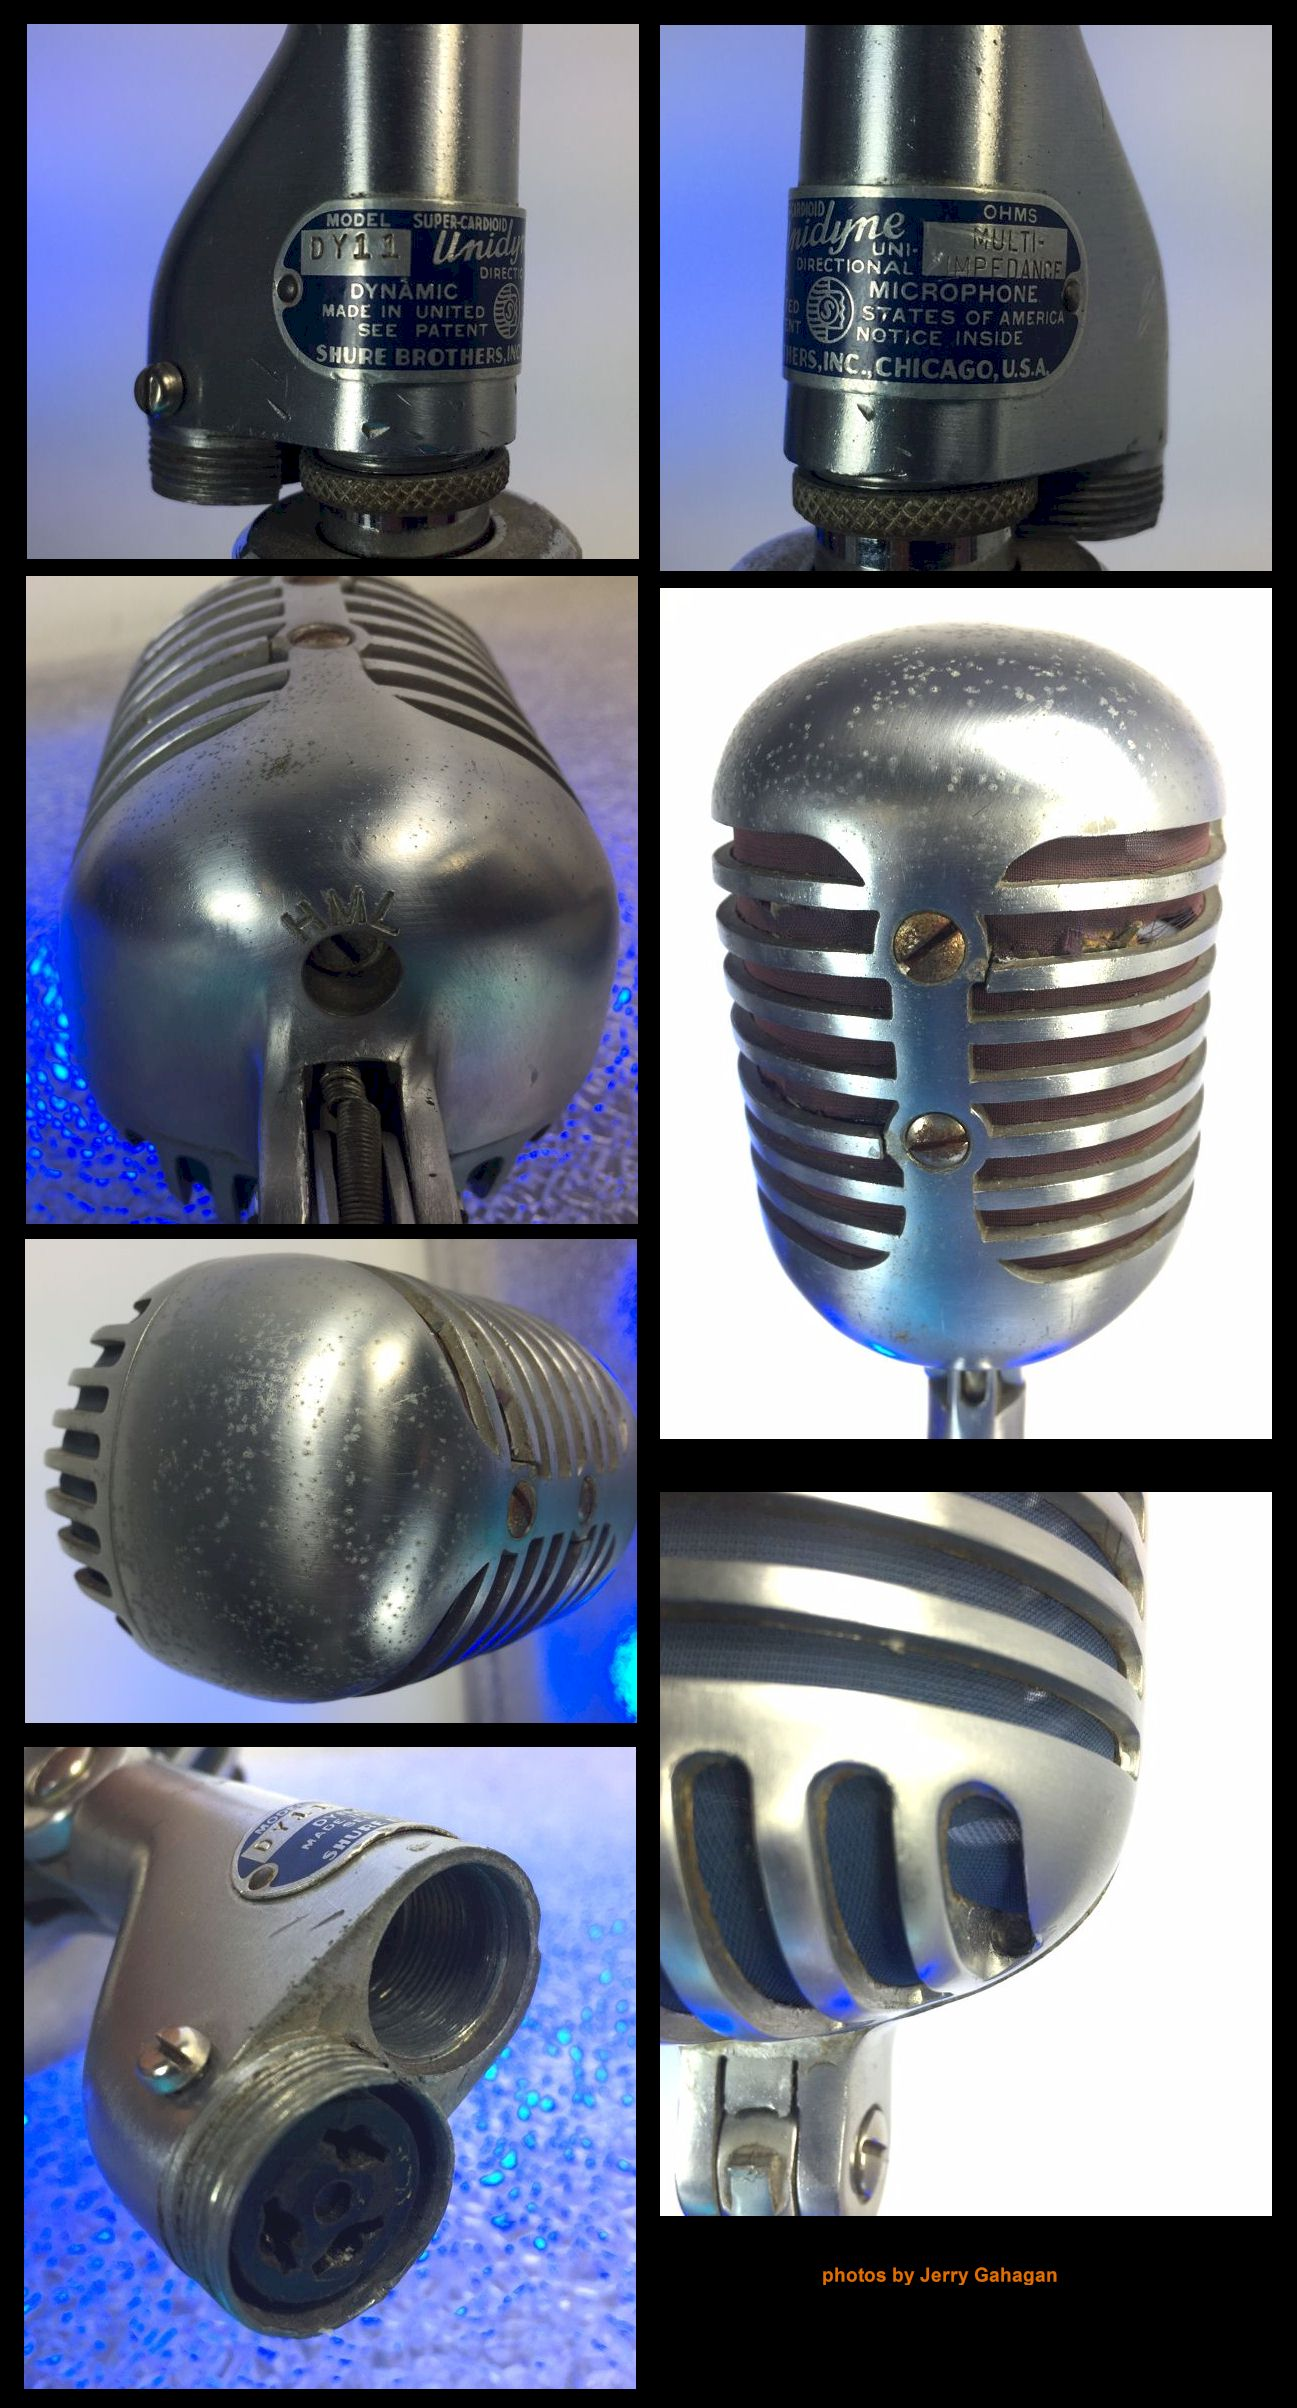 electro voice 623 microphone wiring diagram wiring library big elvis mic blue red screen circa 39 early 40 s for